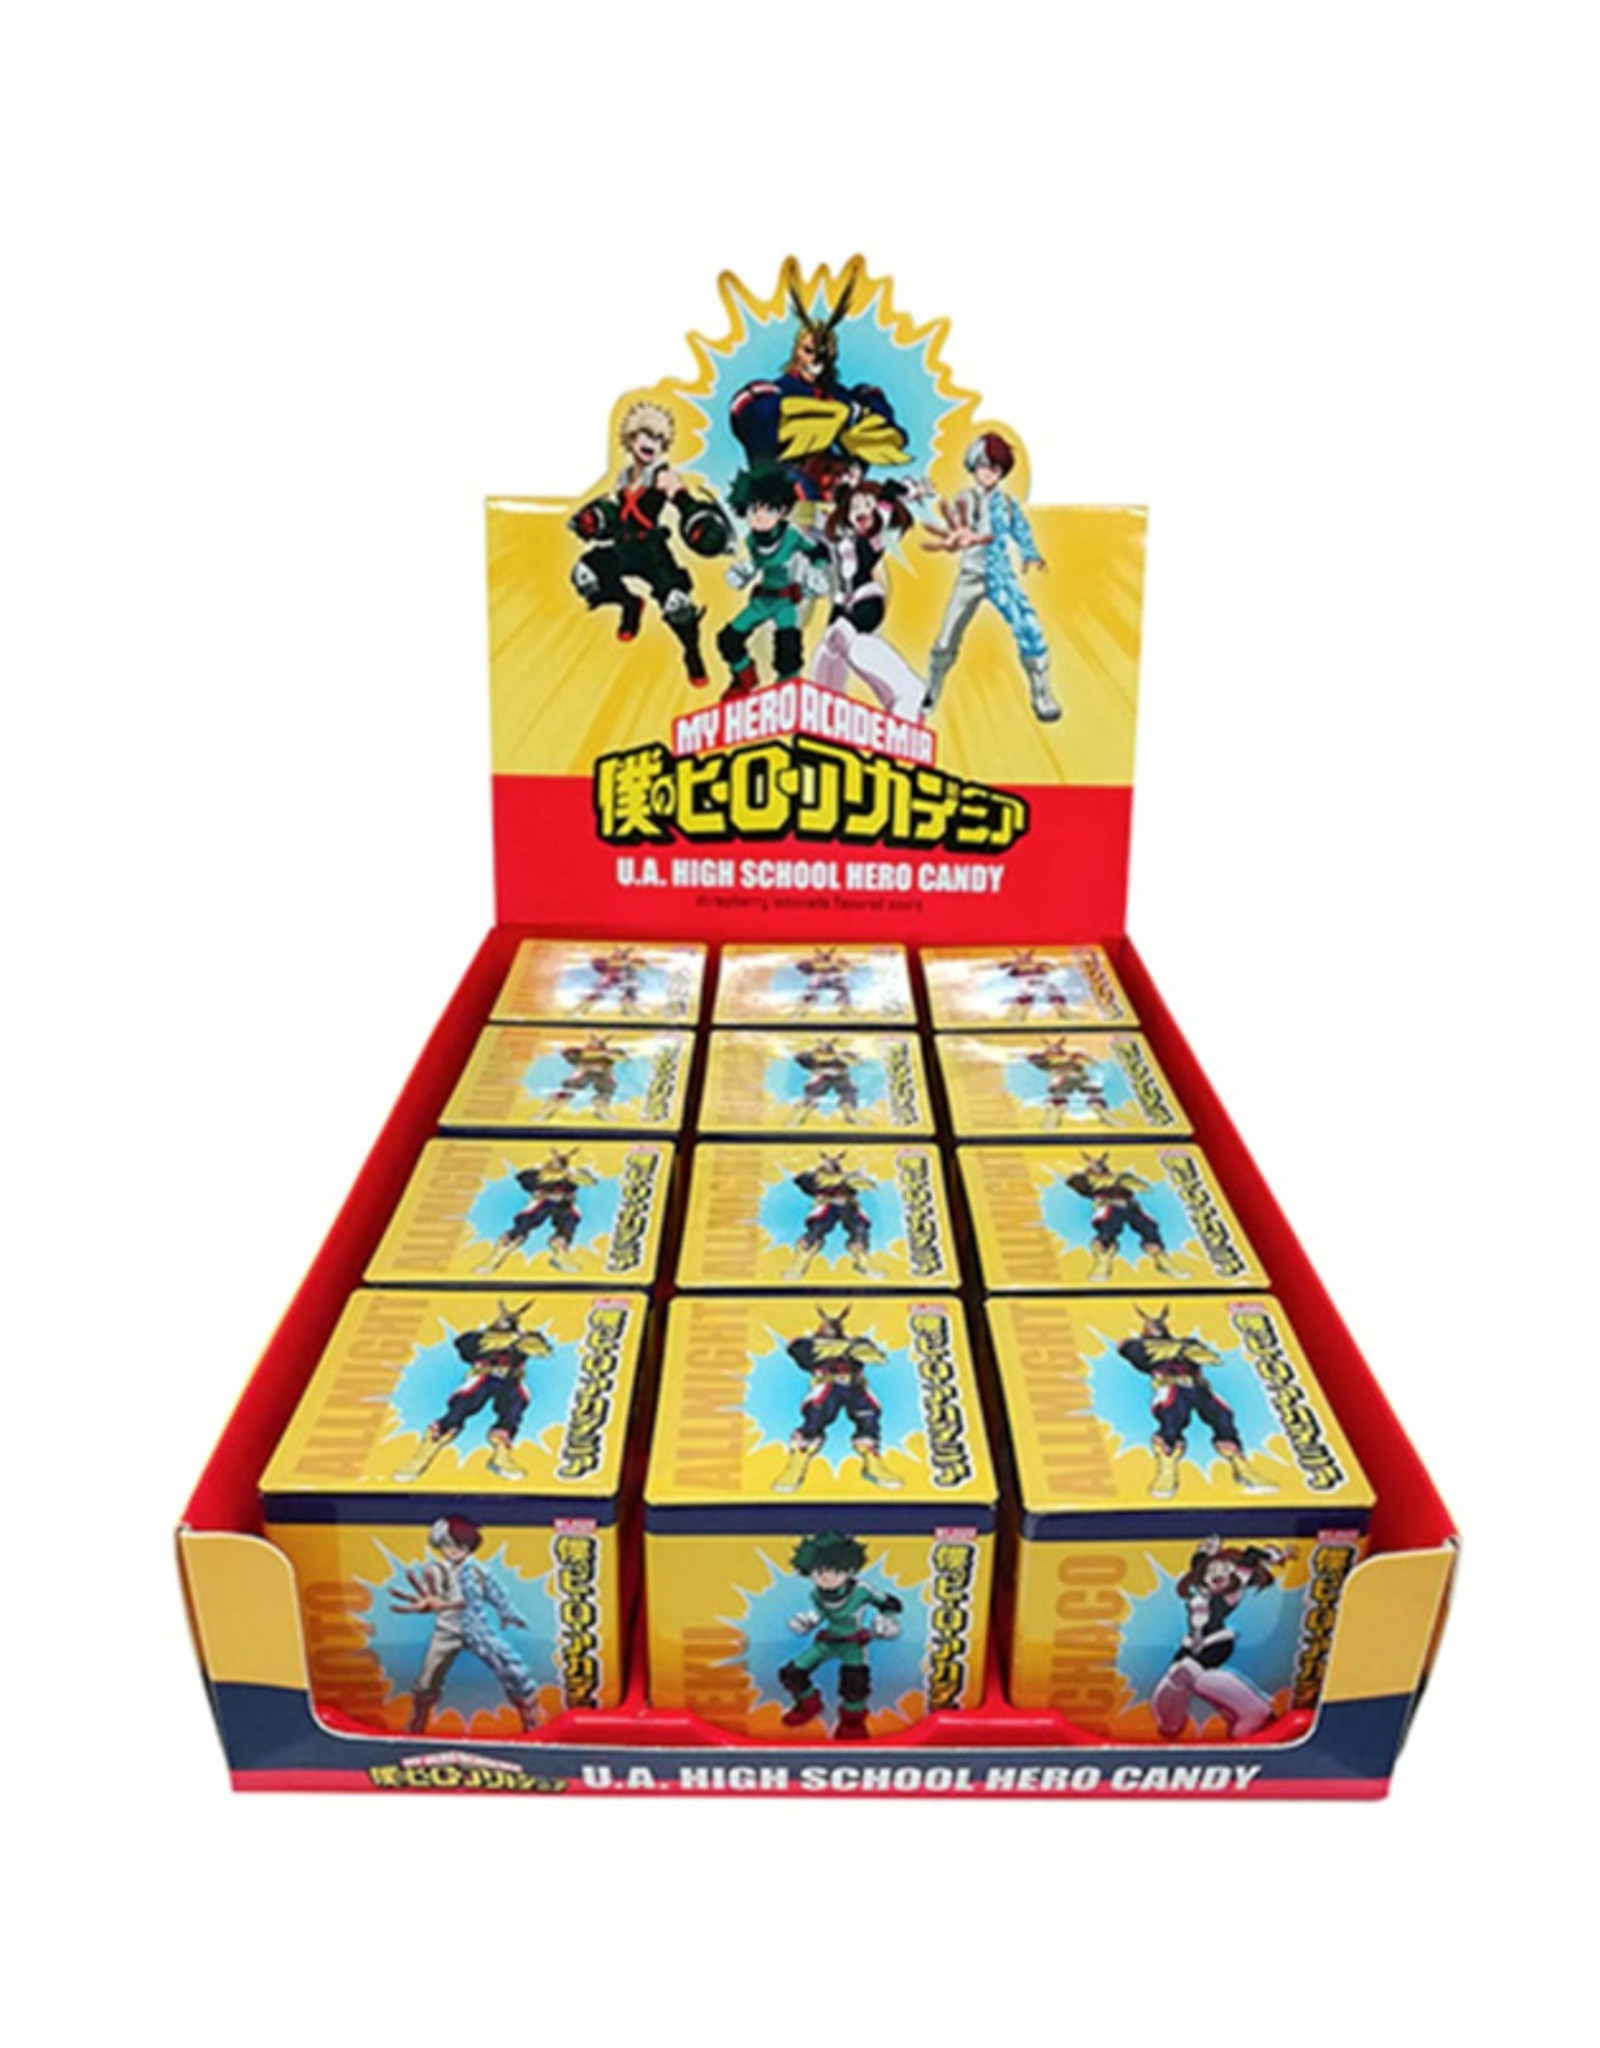 My Hero Academia Candy Tin - Strawberry Lemonade Flavored Sours - 34g